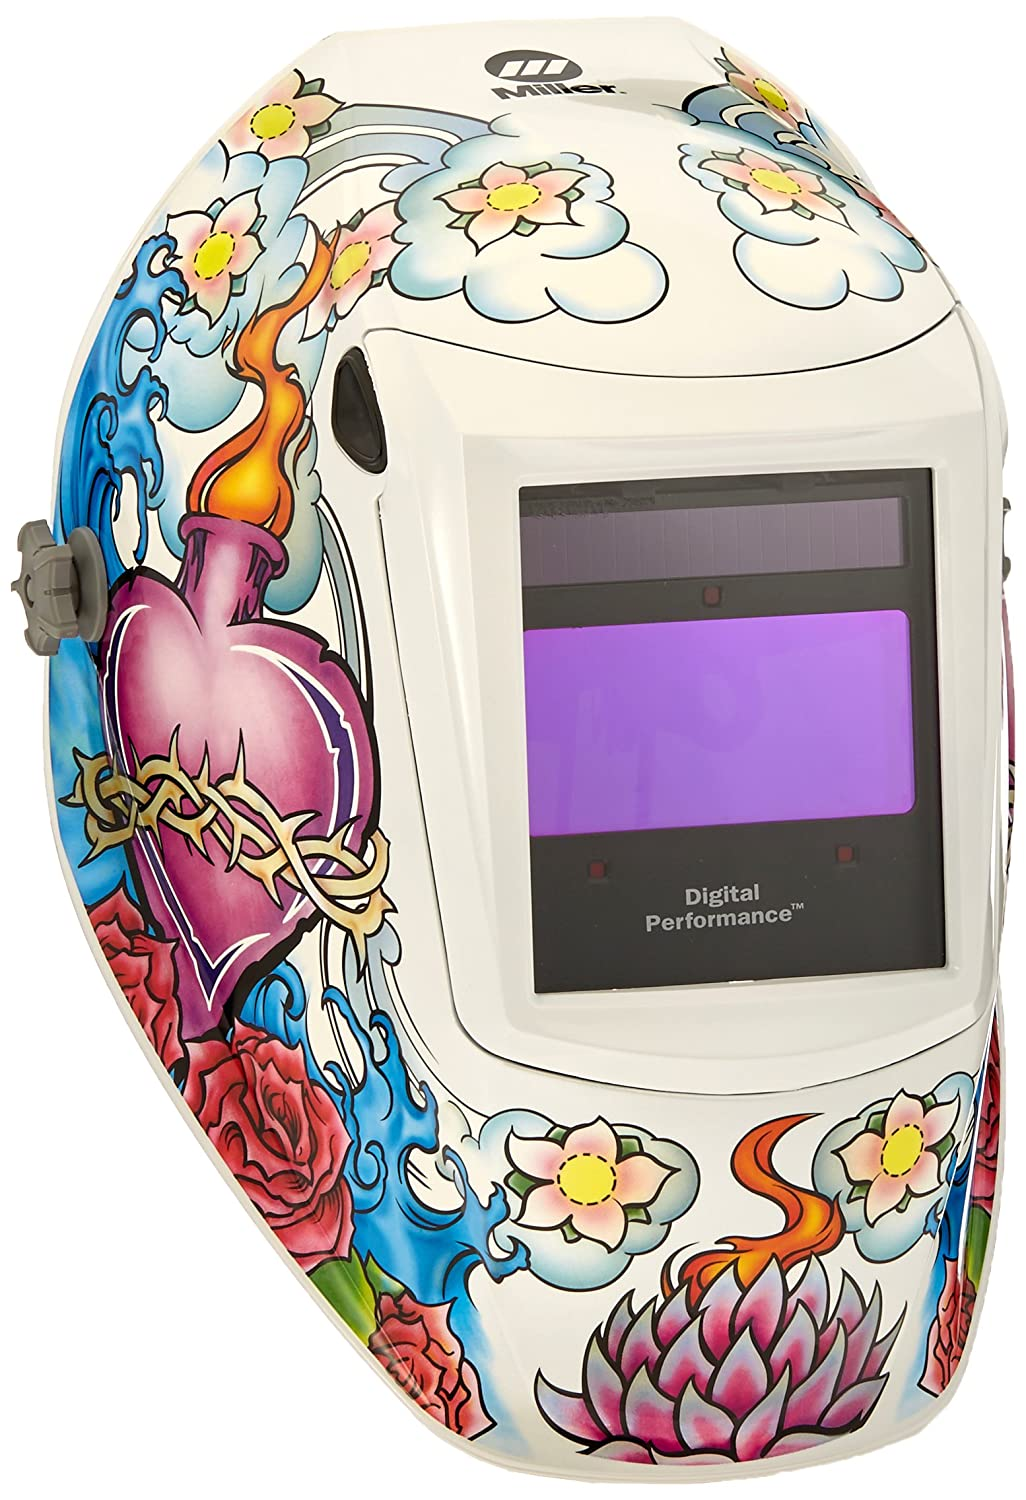 Auto Darkening Welding Helmet, White, Digital Performance, 8 to 13 Lens Shade by Miller Electric  B008E37K76